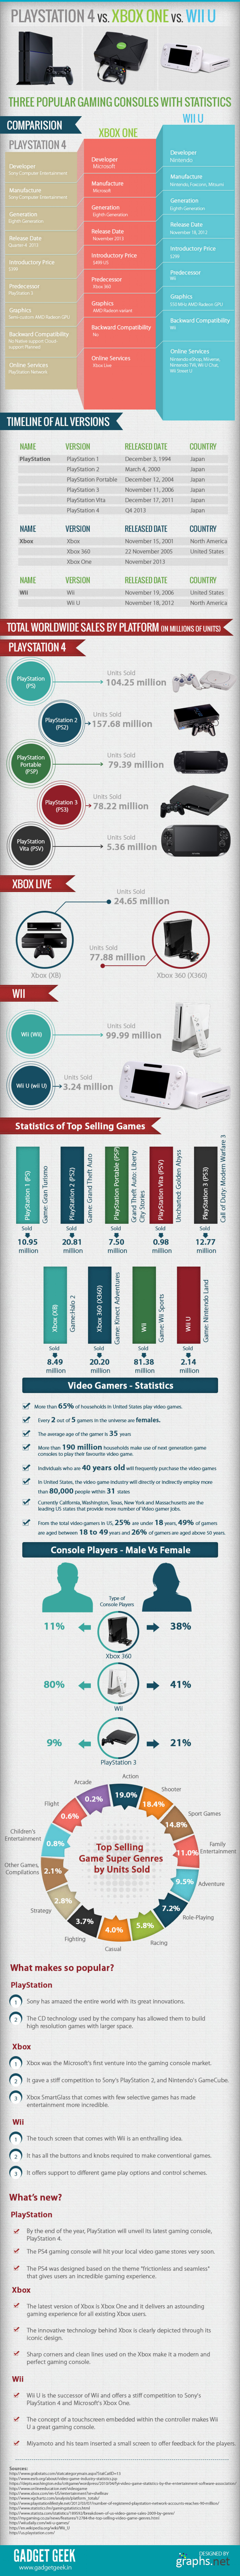 Difference between Xbox one, PS4 and WiiU Infographic